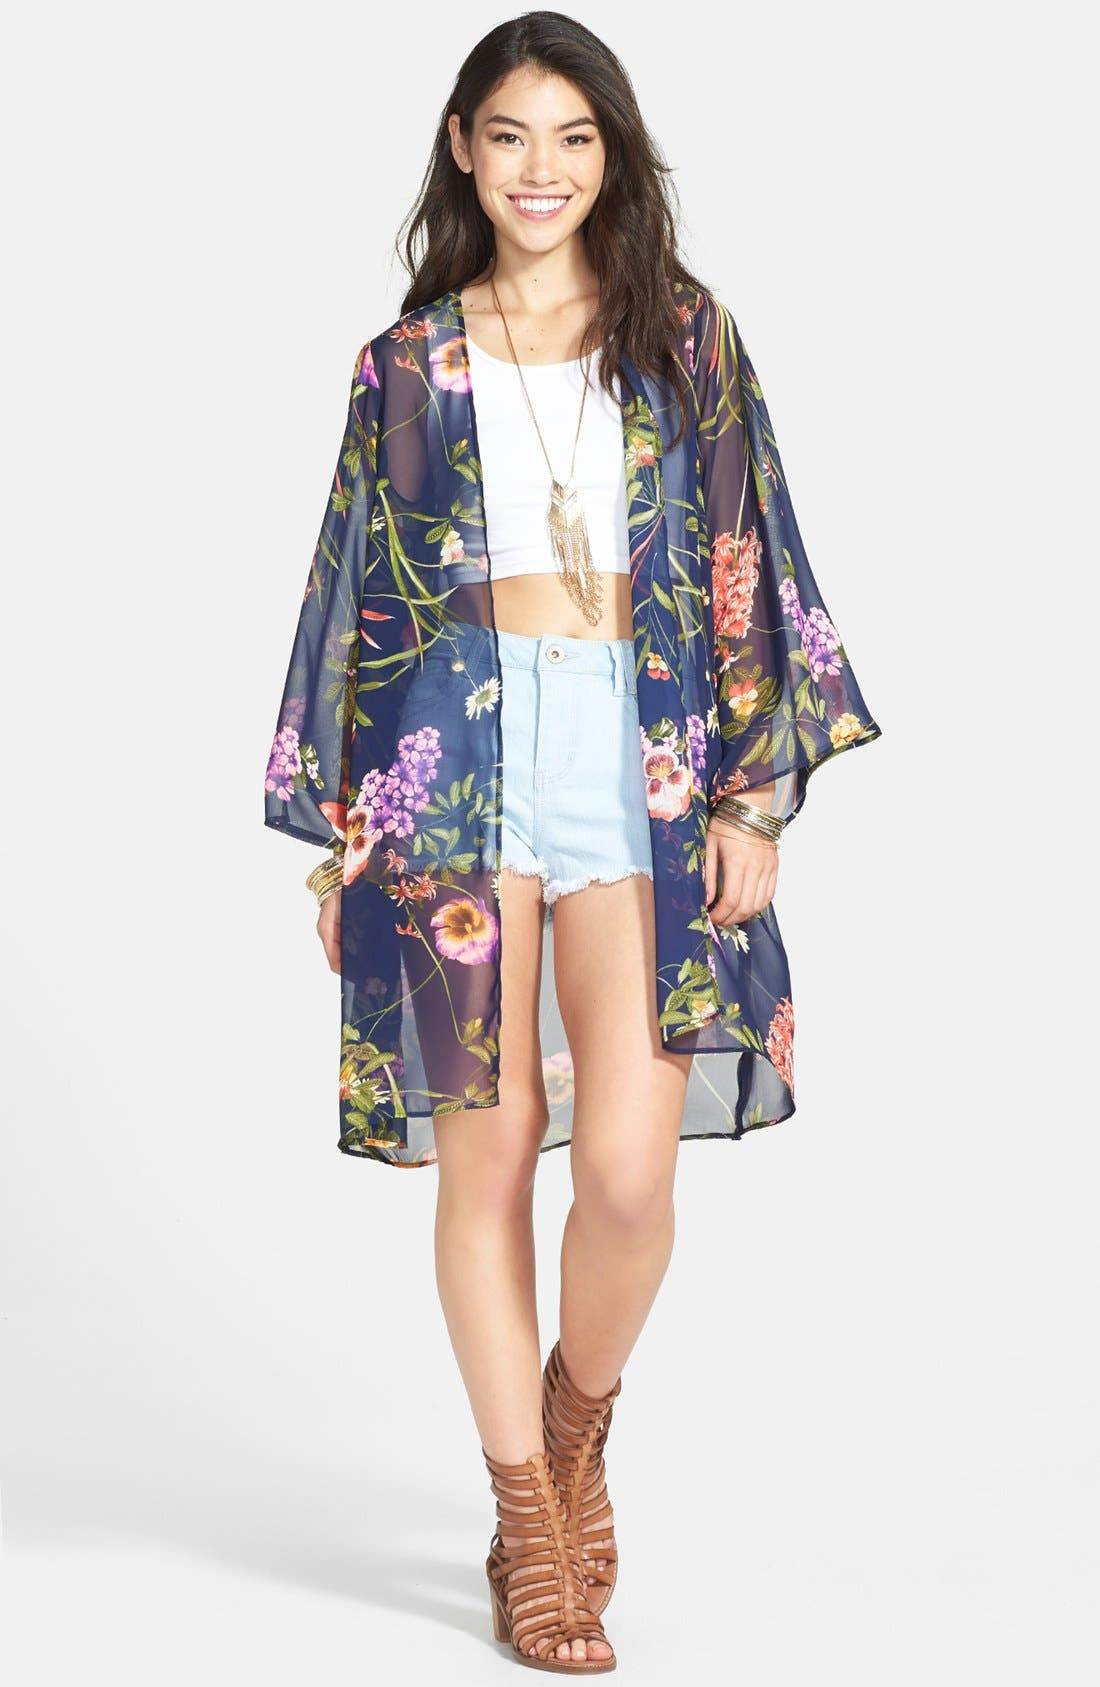 Alternate Image 1 Selected - Lush Print Chiffon Lightweight Jacket (Juniors)